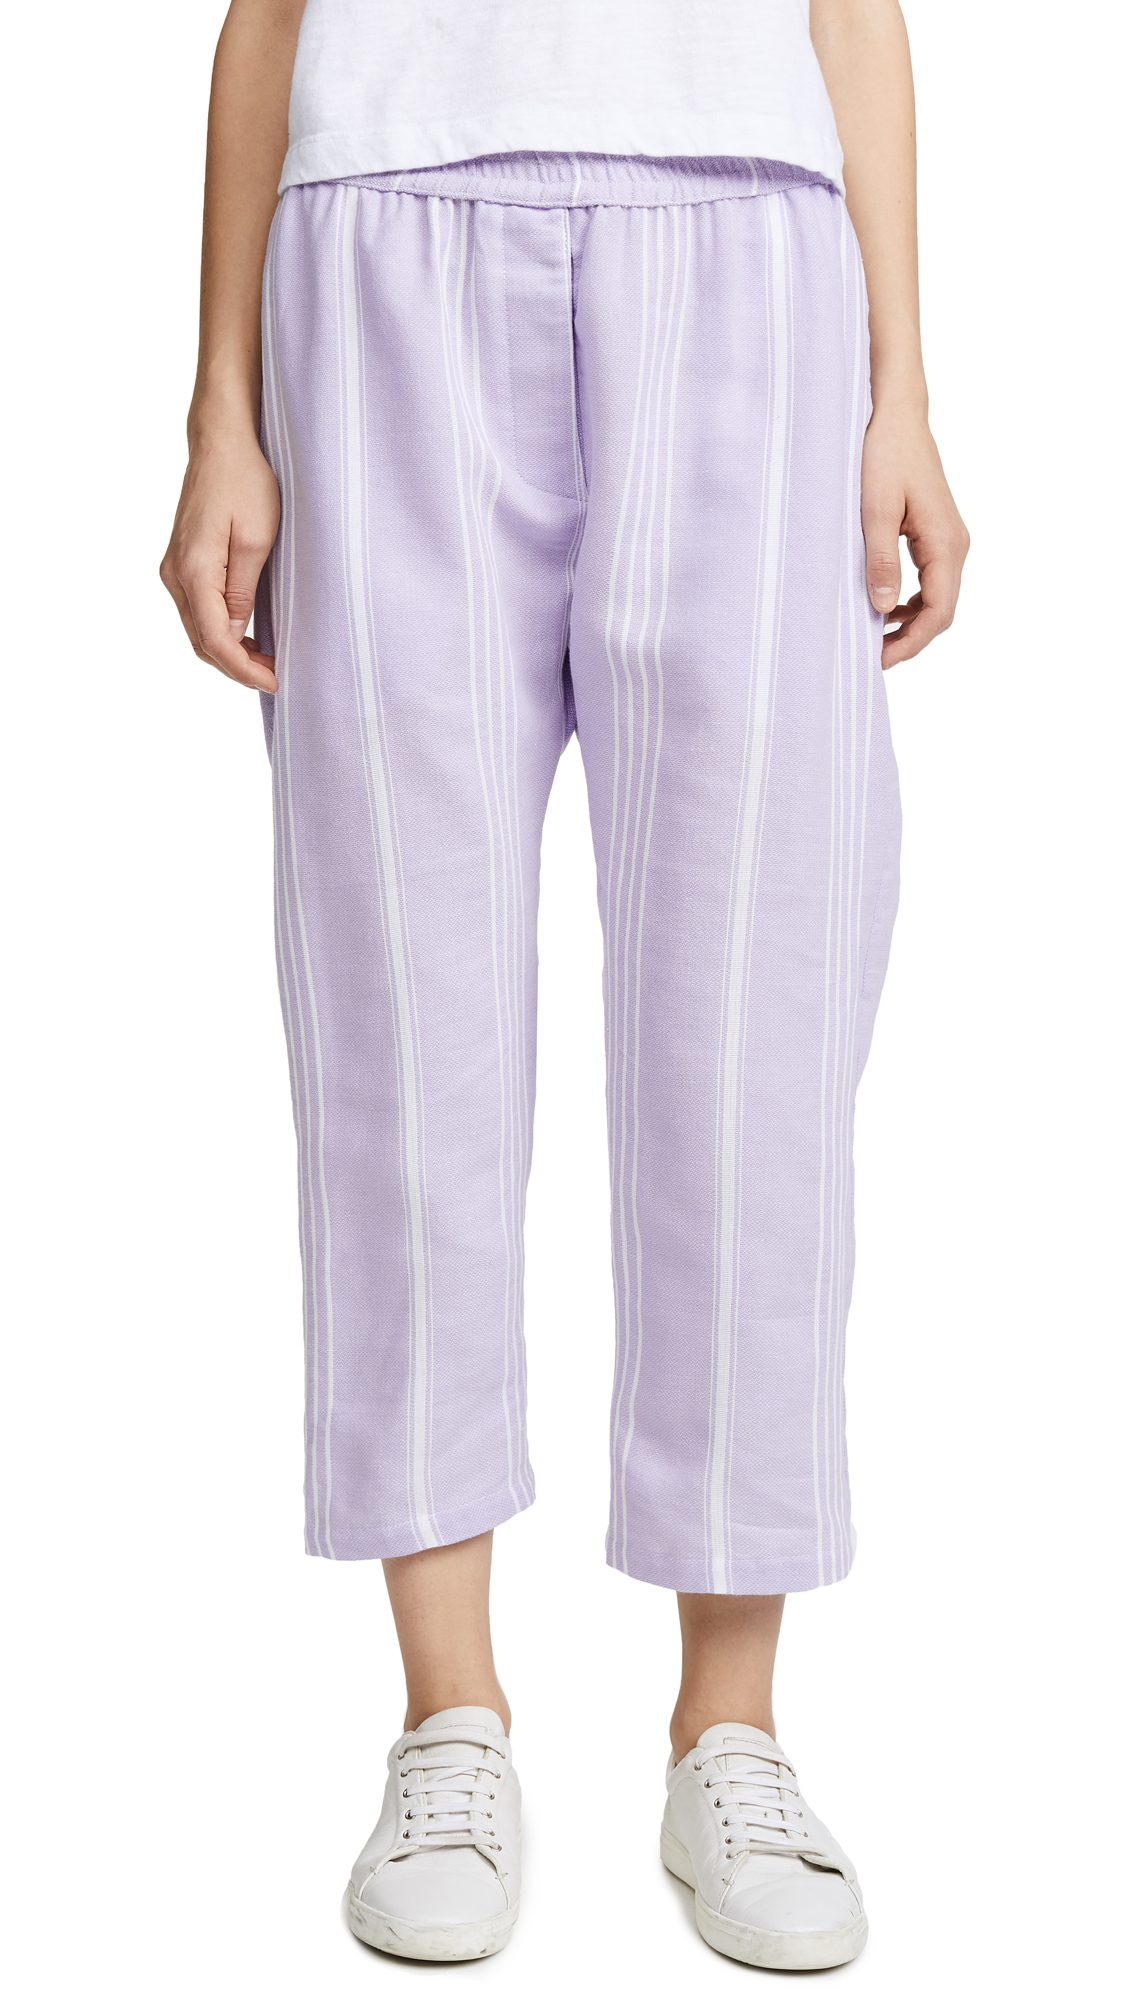 Paradised Beach Pants